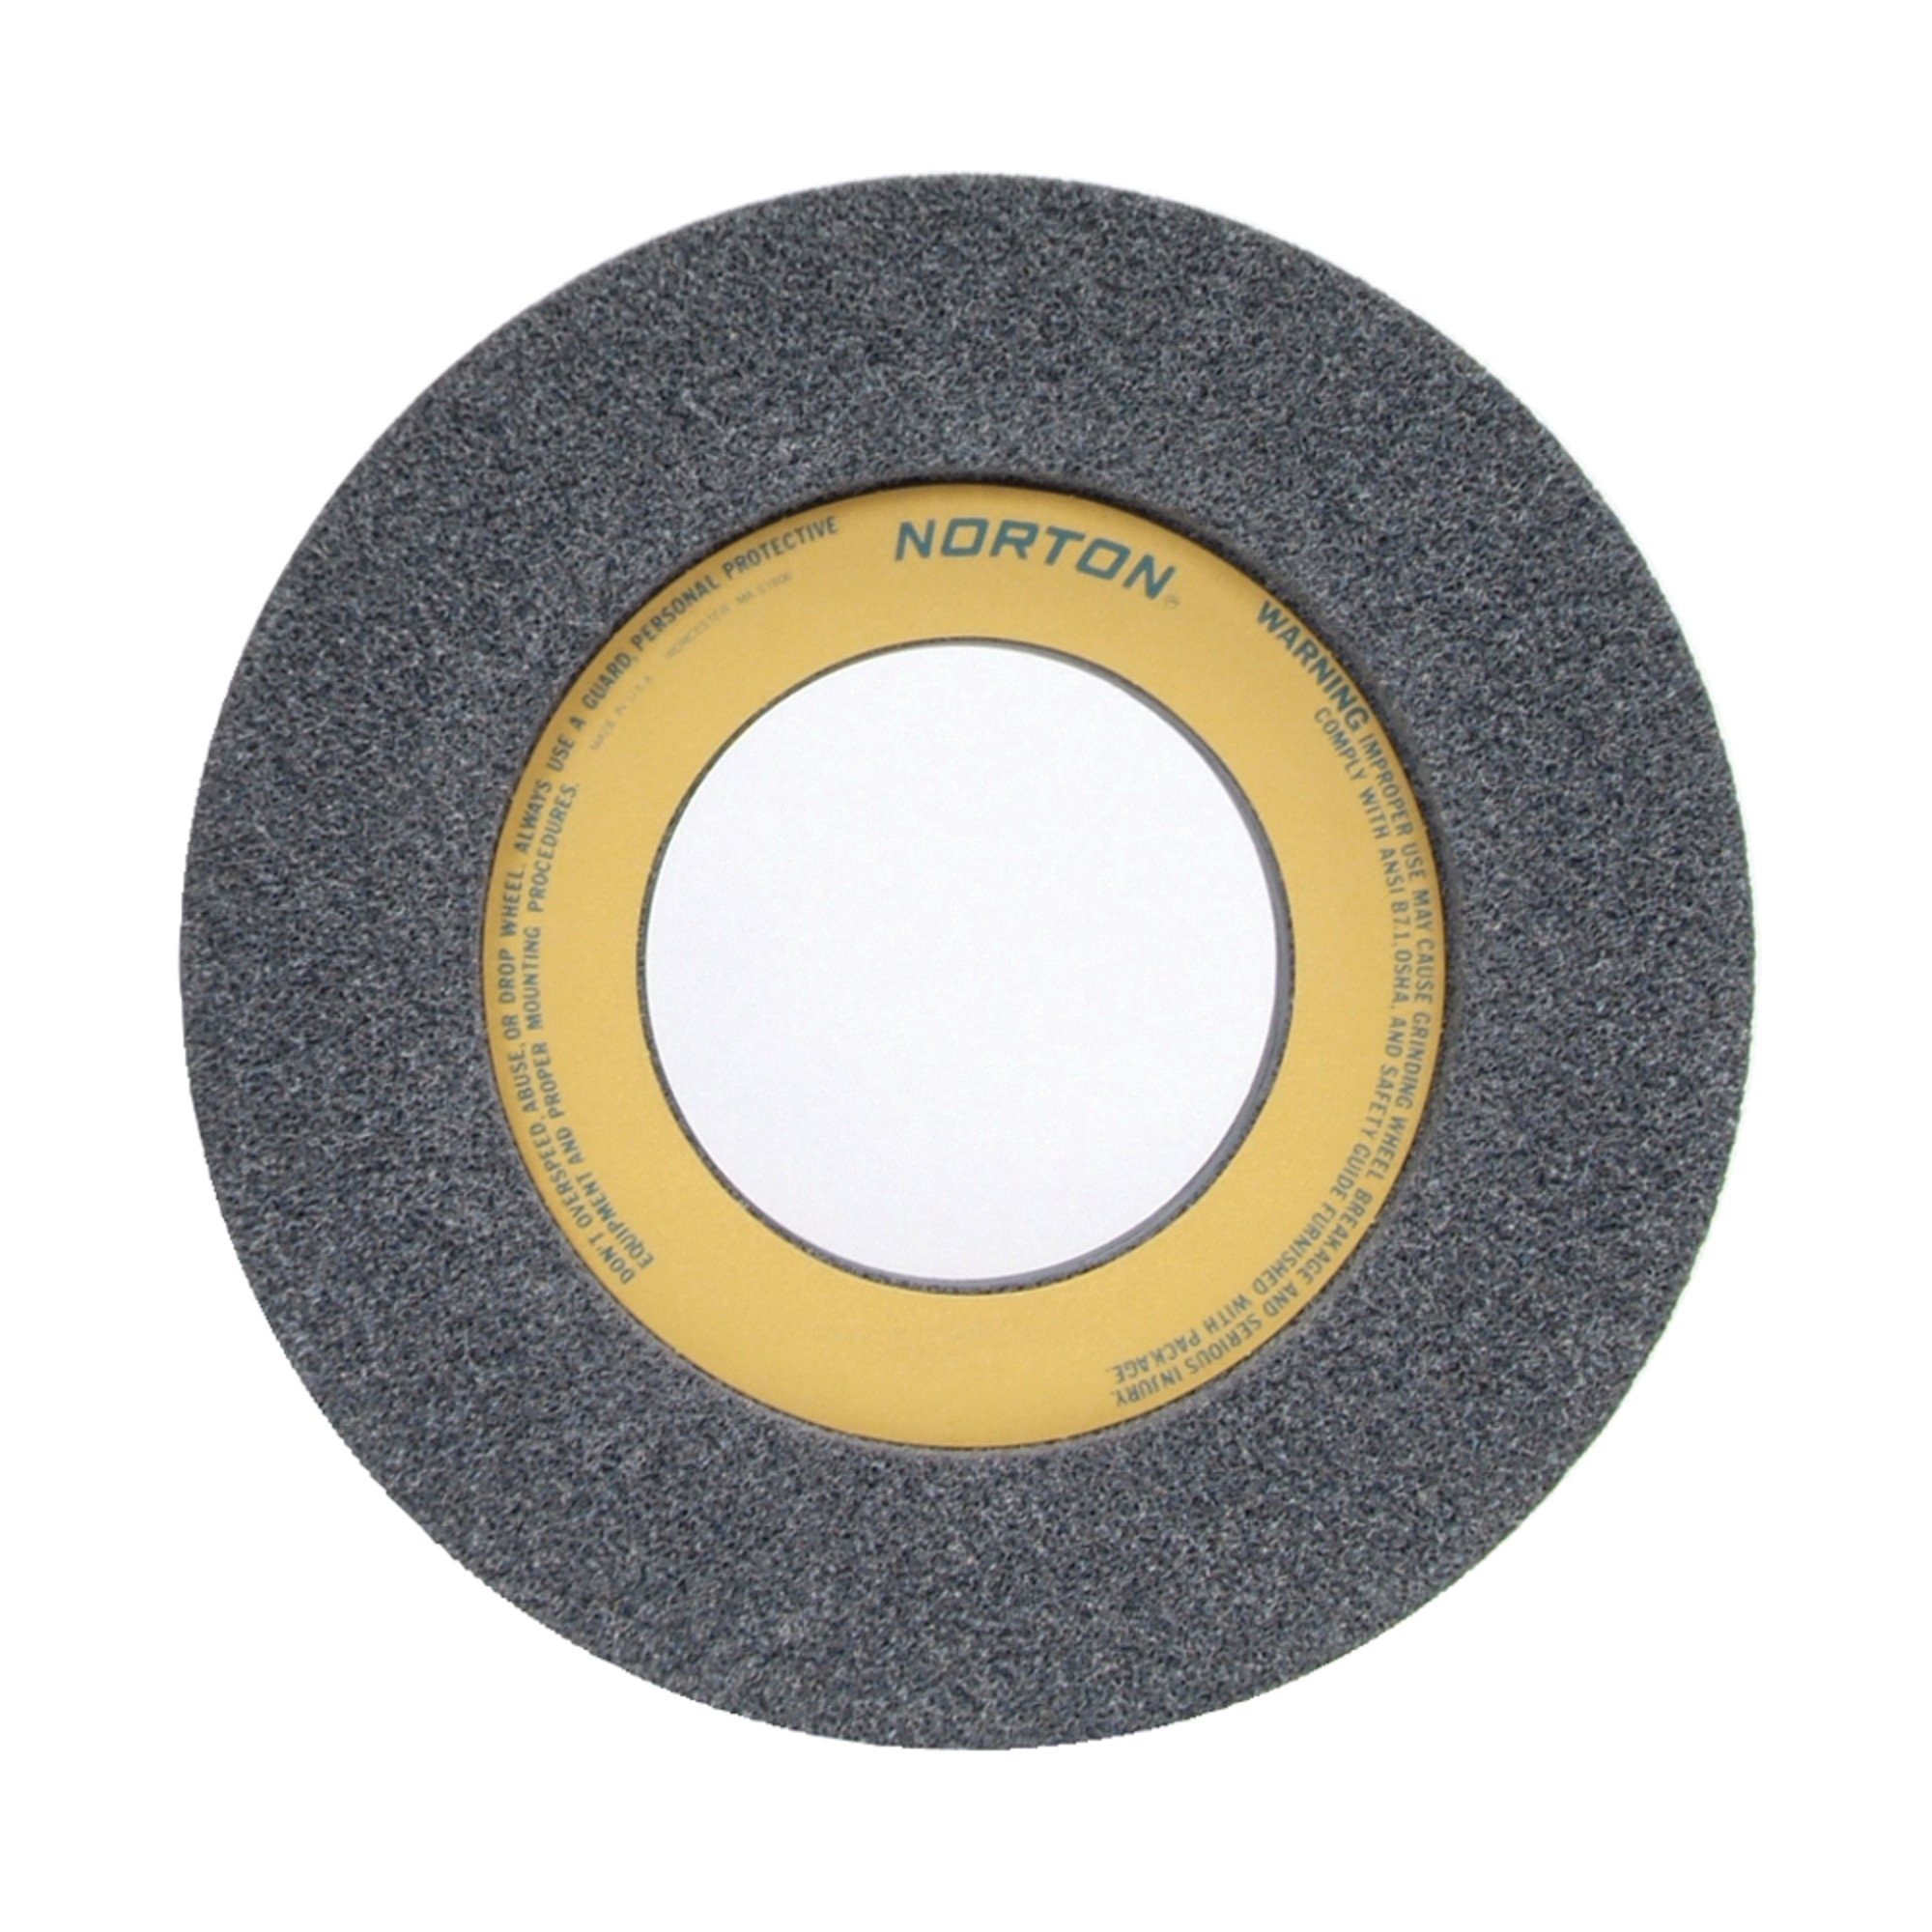 Norton® 66253263180 32A 1-Side Recessed Toolroom Wheel, 12 in Dia x 1-1/2 in THK, 5 in Center Hole, 46 Grit, Aluminum Oxide Abrasive